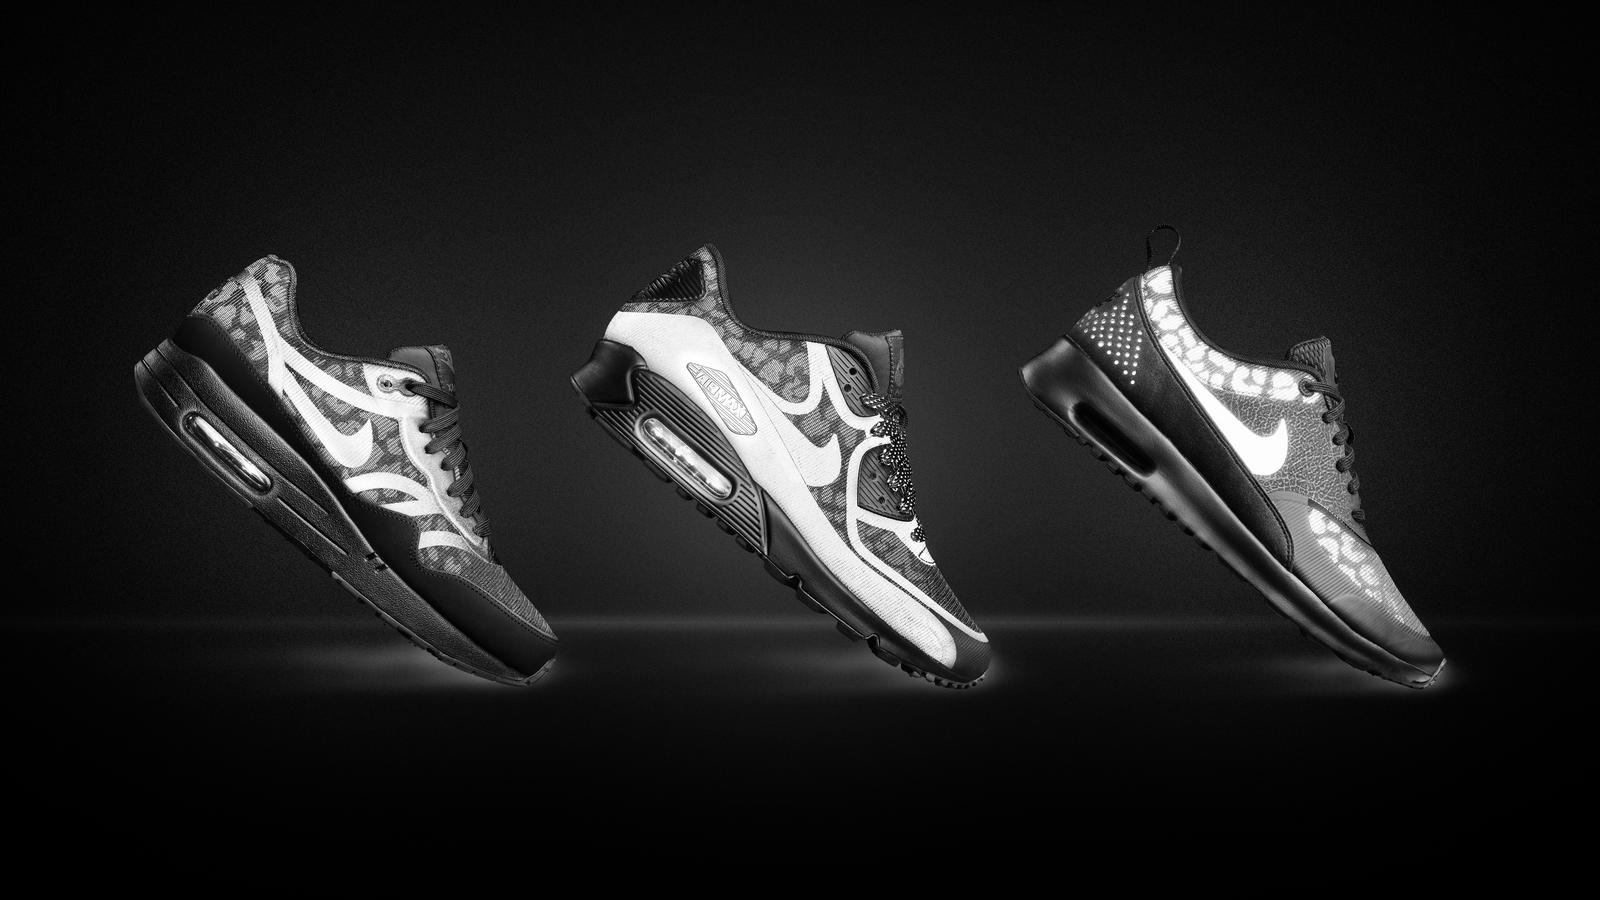 The Nike Air Max Reflect Collection: One Shoe, Both Sides of